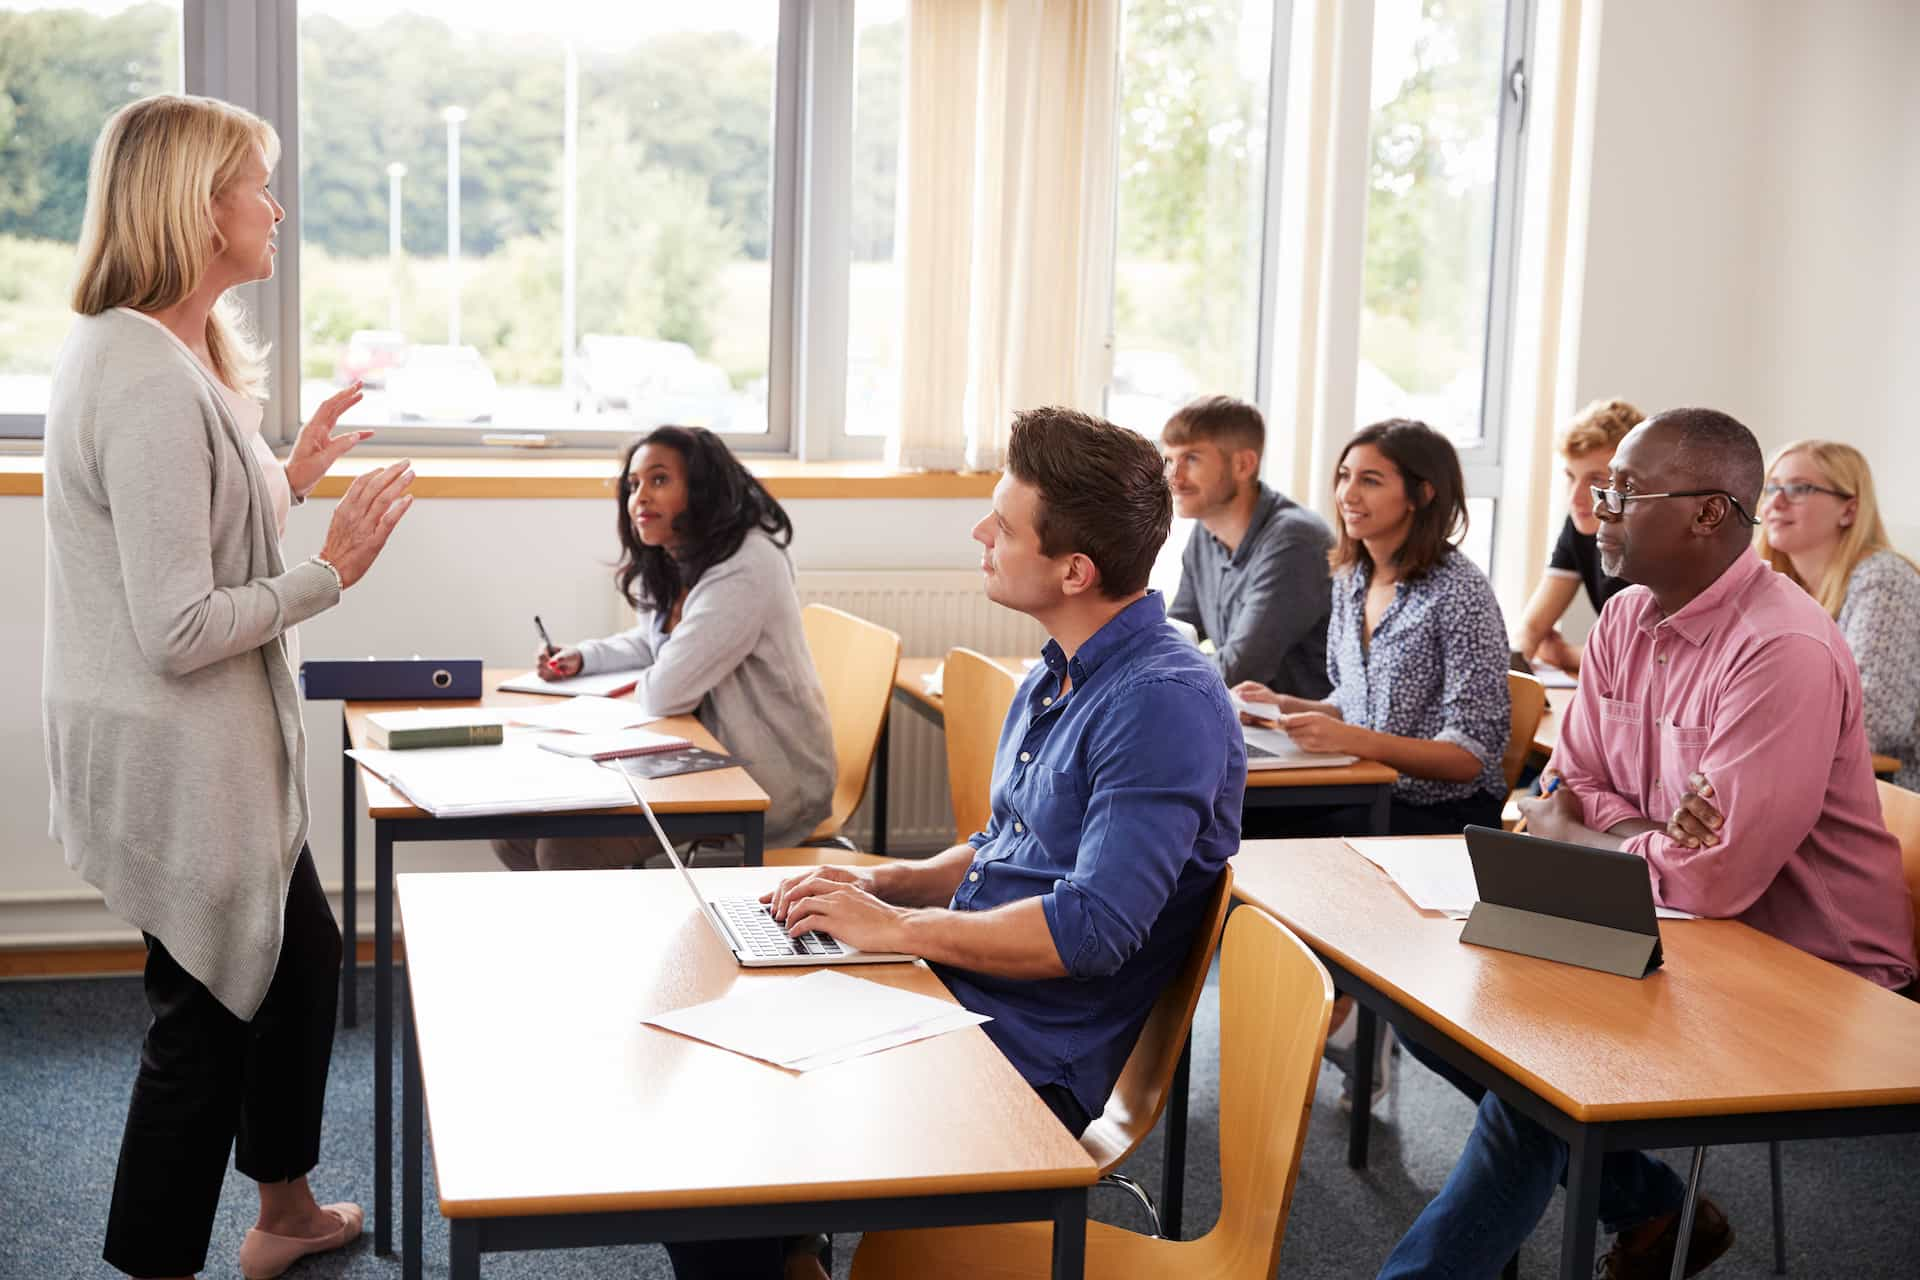 TEFL Course | Teaching English as a Foreign Language – Weekend Course